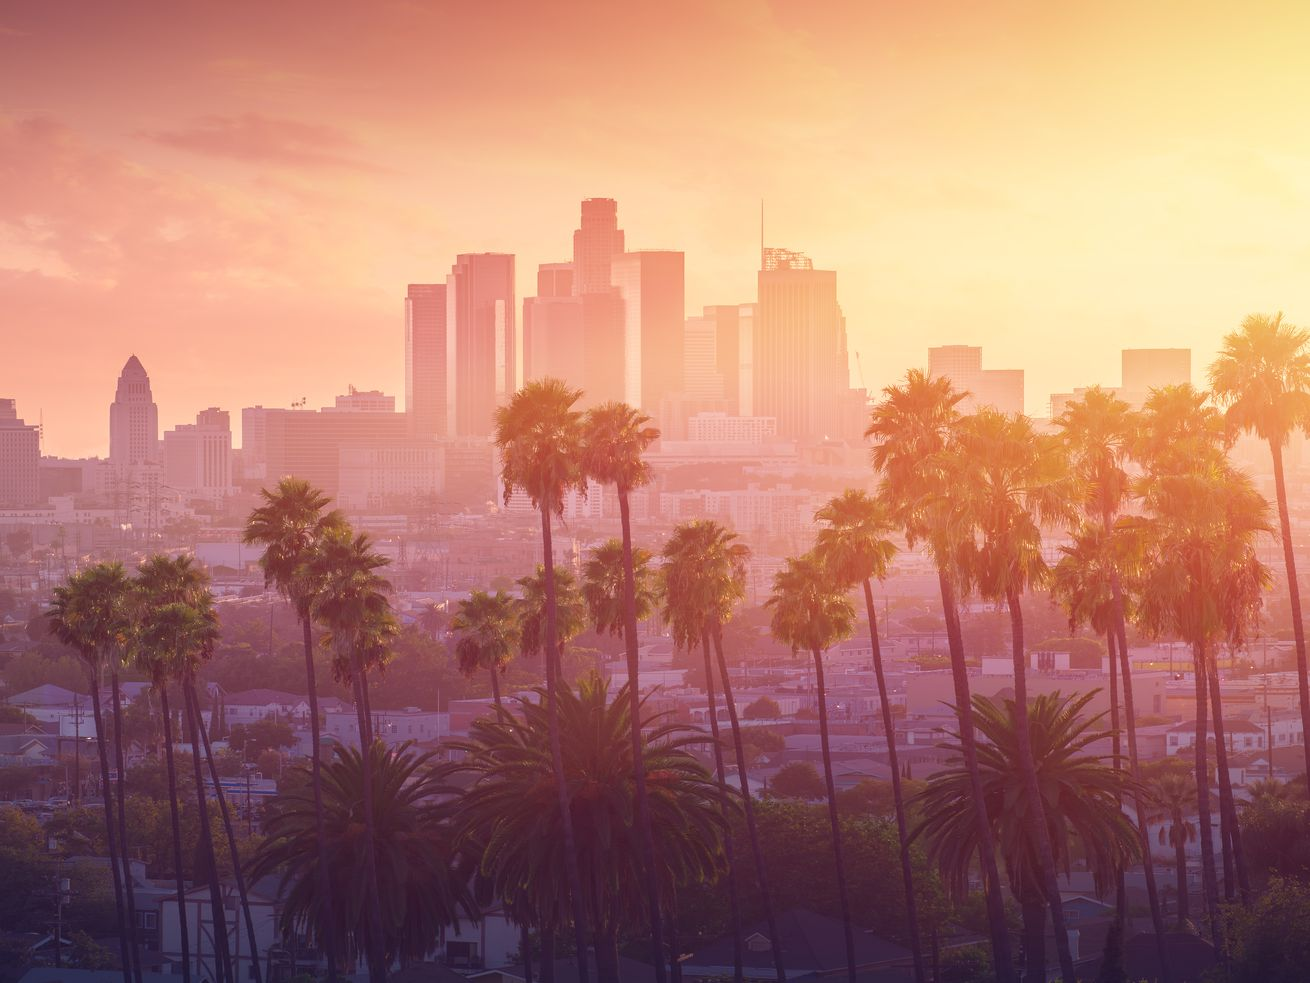 A distant view of the Los Angeles skyline, fronted by a row of palm trees. Sunset casts a gradient of yellow, pink, and purple over the scene.